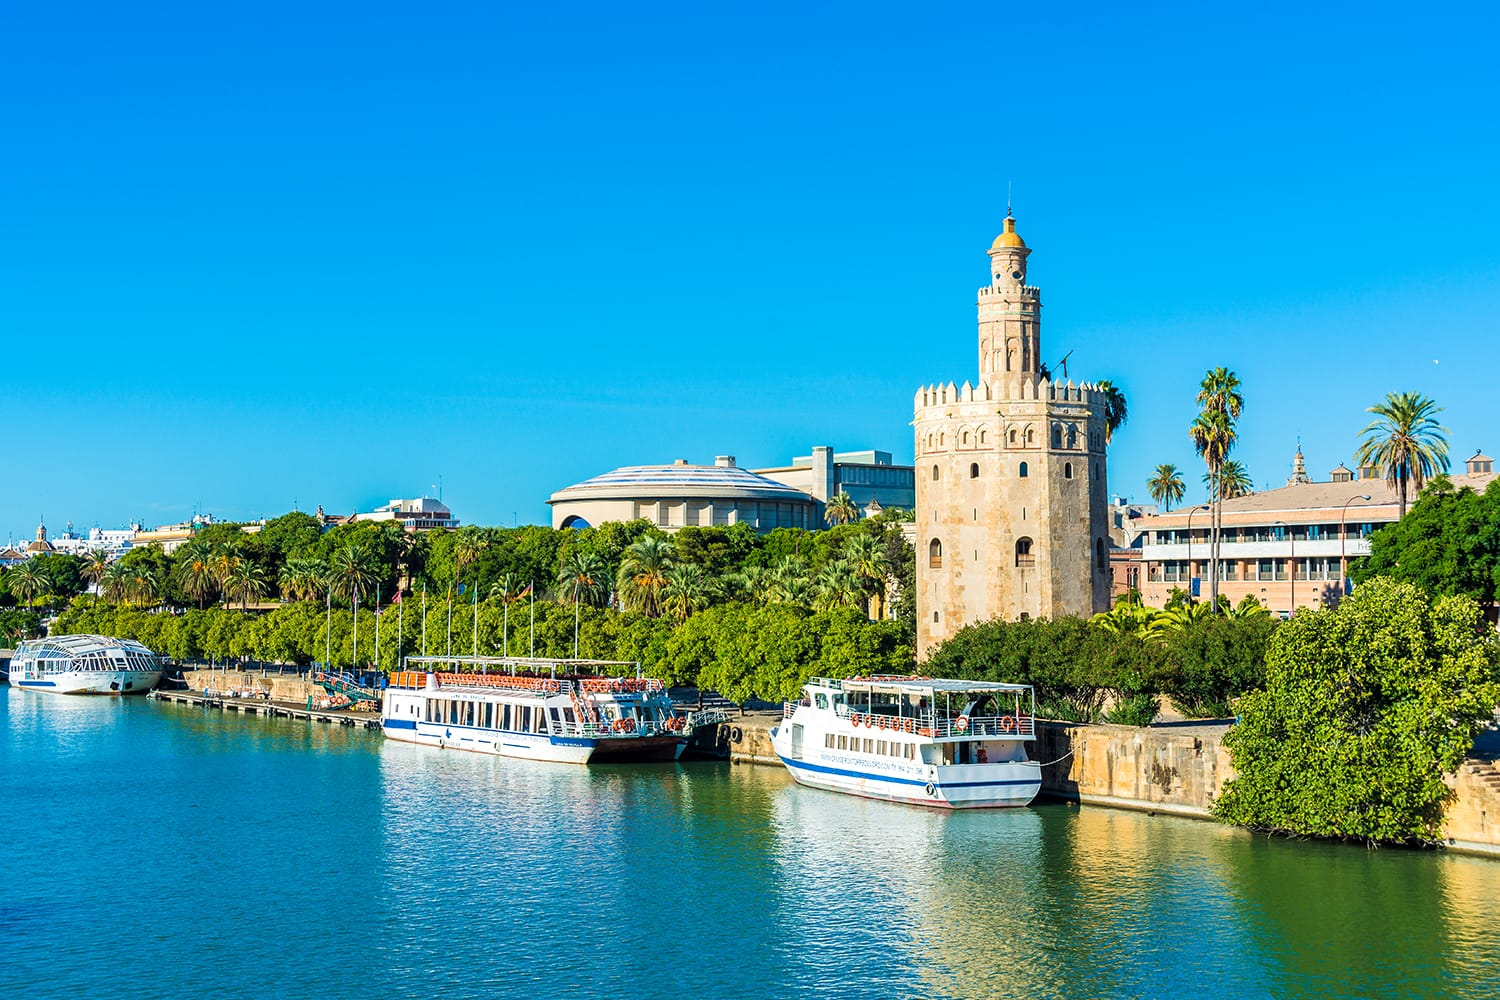 The Torre del Oro in Seville is an albarrana tower located on the left bank of the Guadalquivir River. It houses the Naval Museum of Seville, Spain